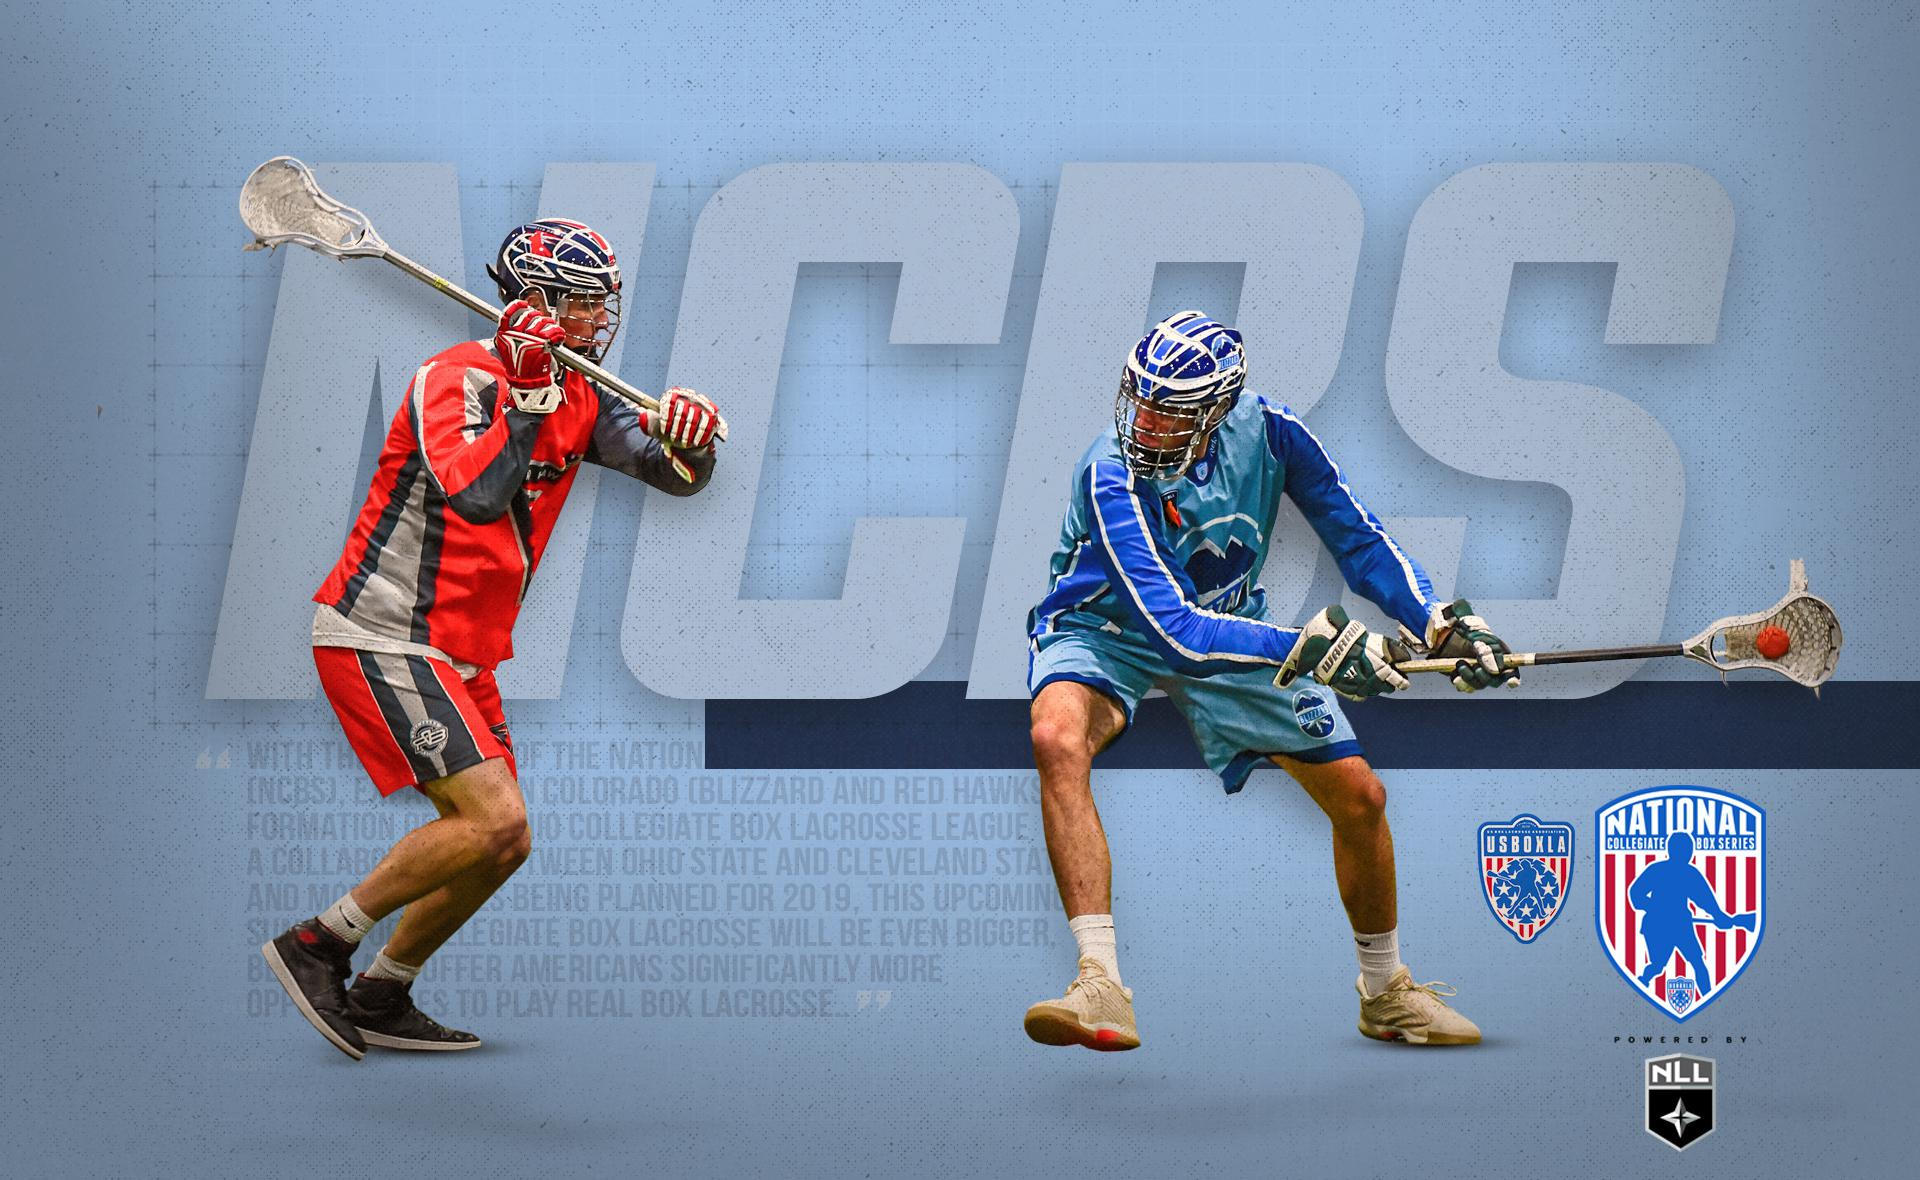 The USBOXLA-sanctioned NCBS will provide even more playing opportunities in 2021